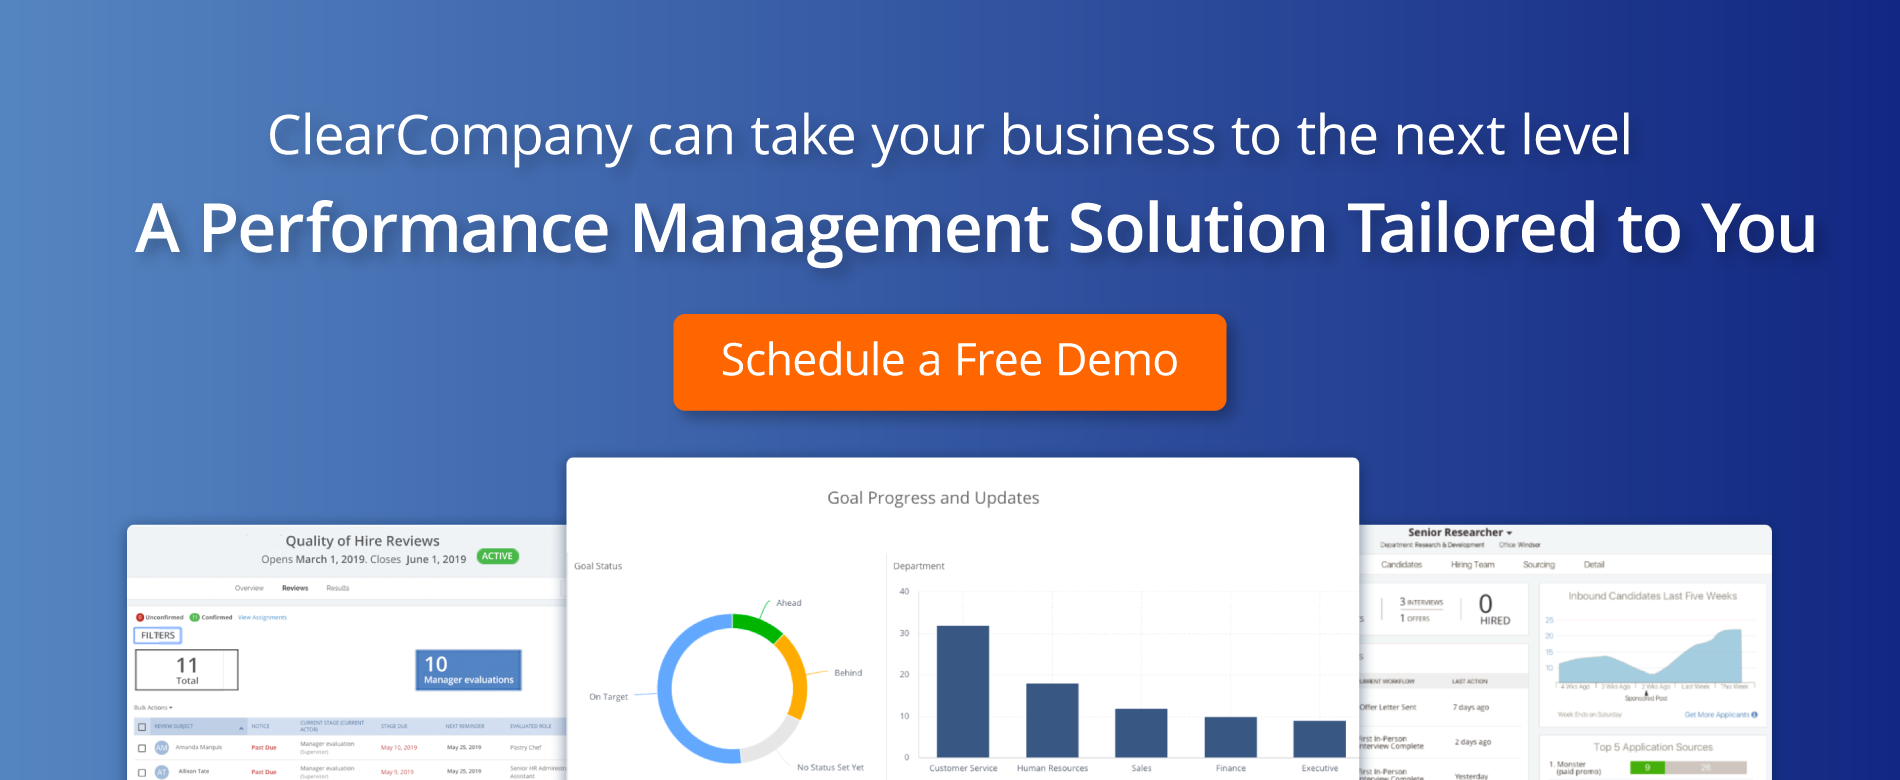 Performance Management Solution Tailored to You